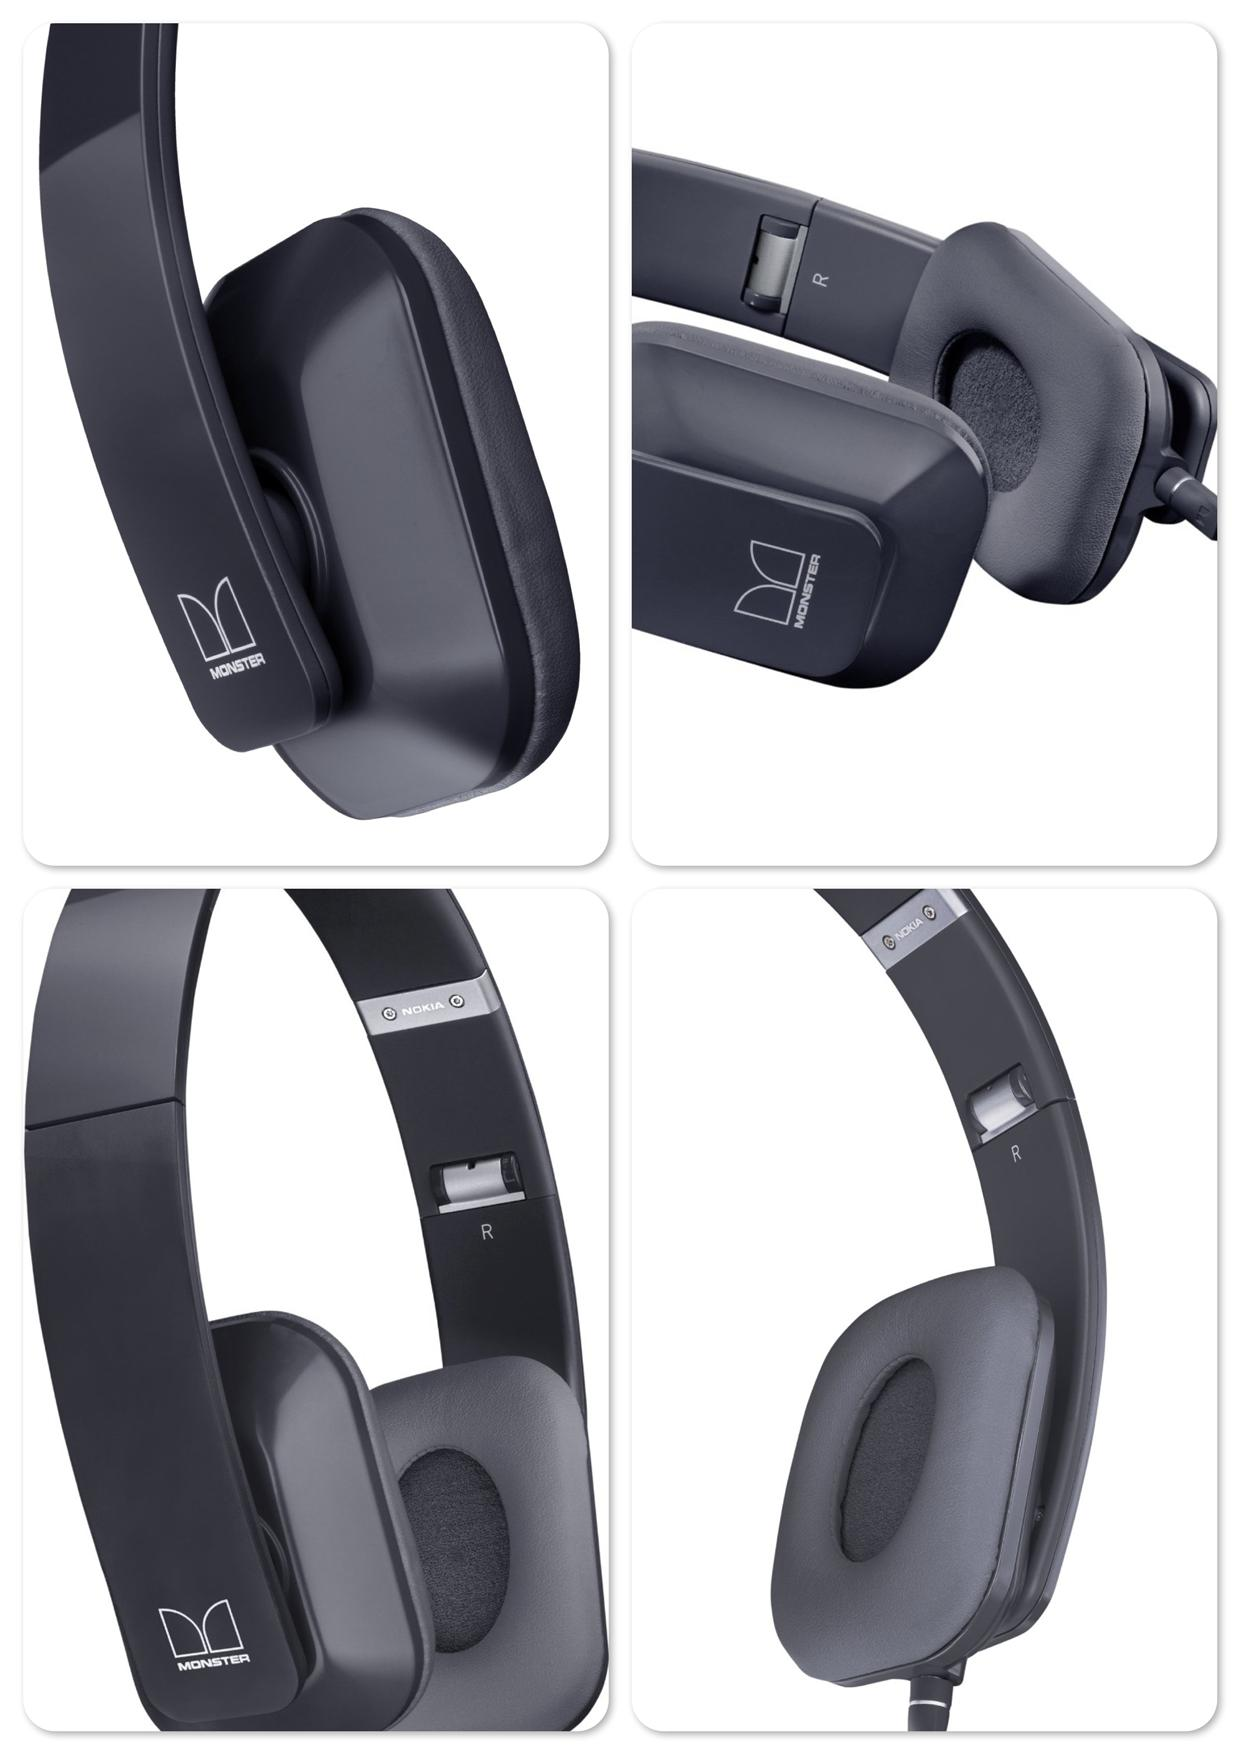 Bdotcom Nokia WH-930 Purity HD Wired On-Ear Stereo Headset by Monster